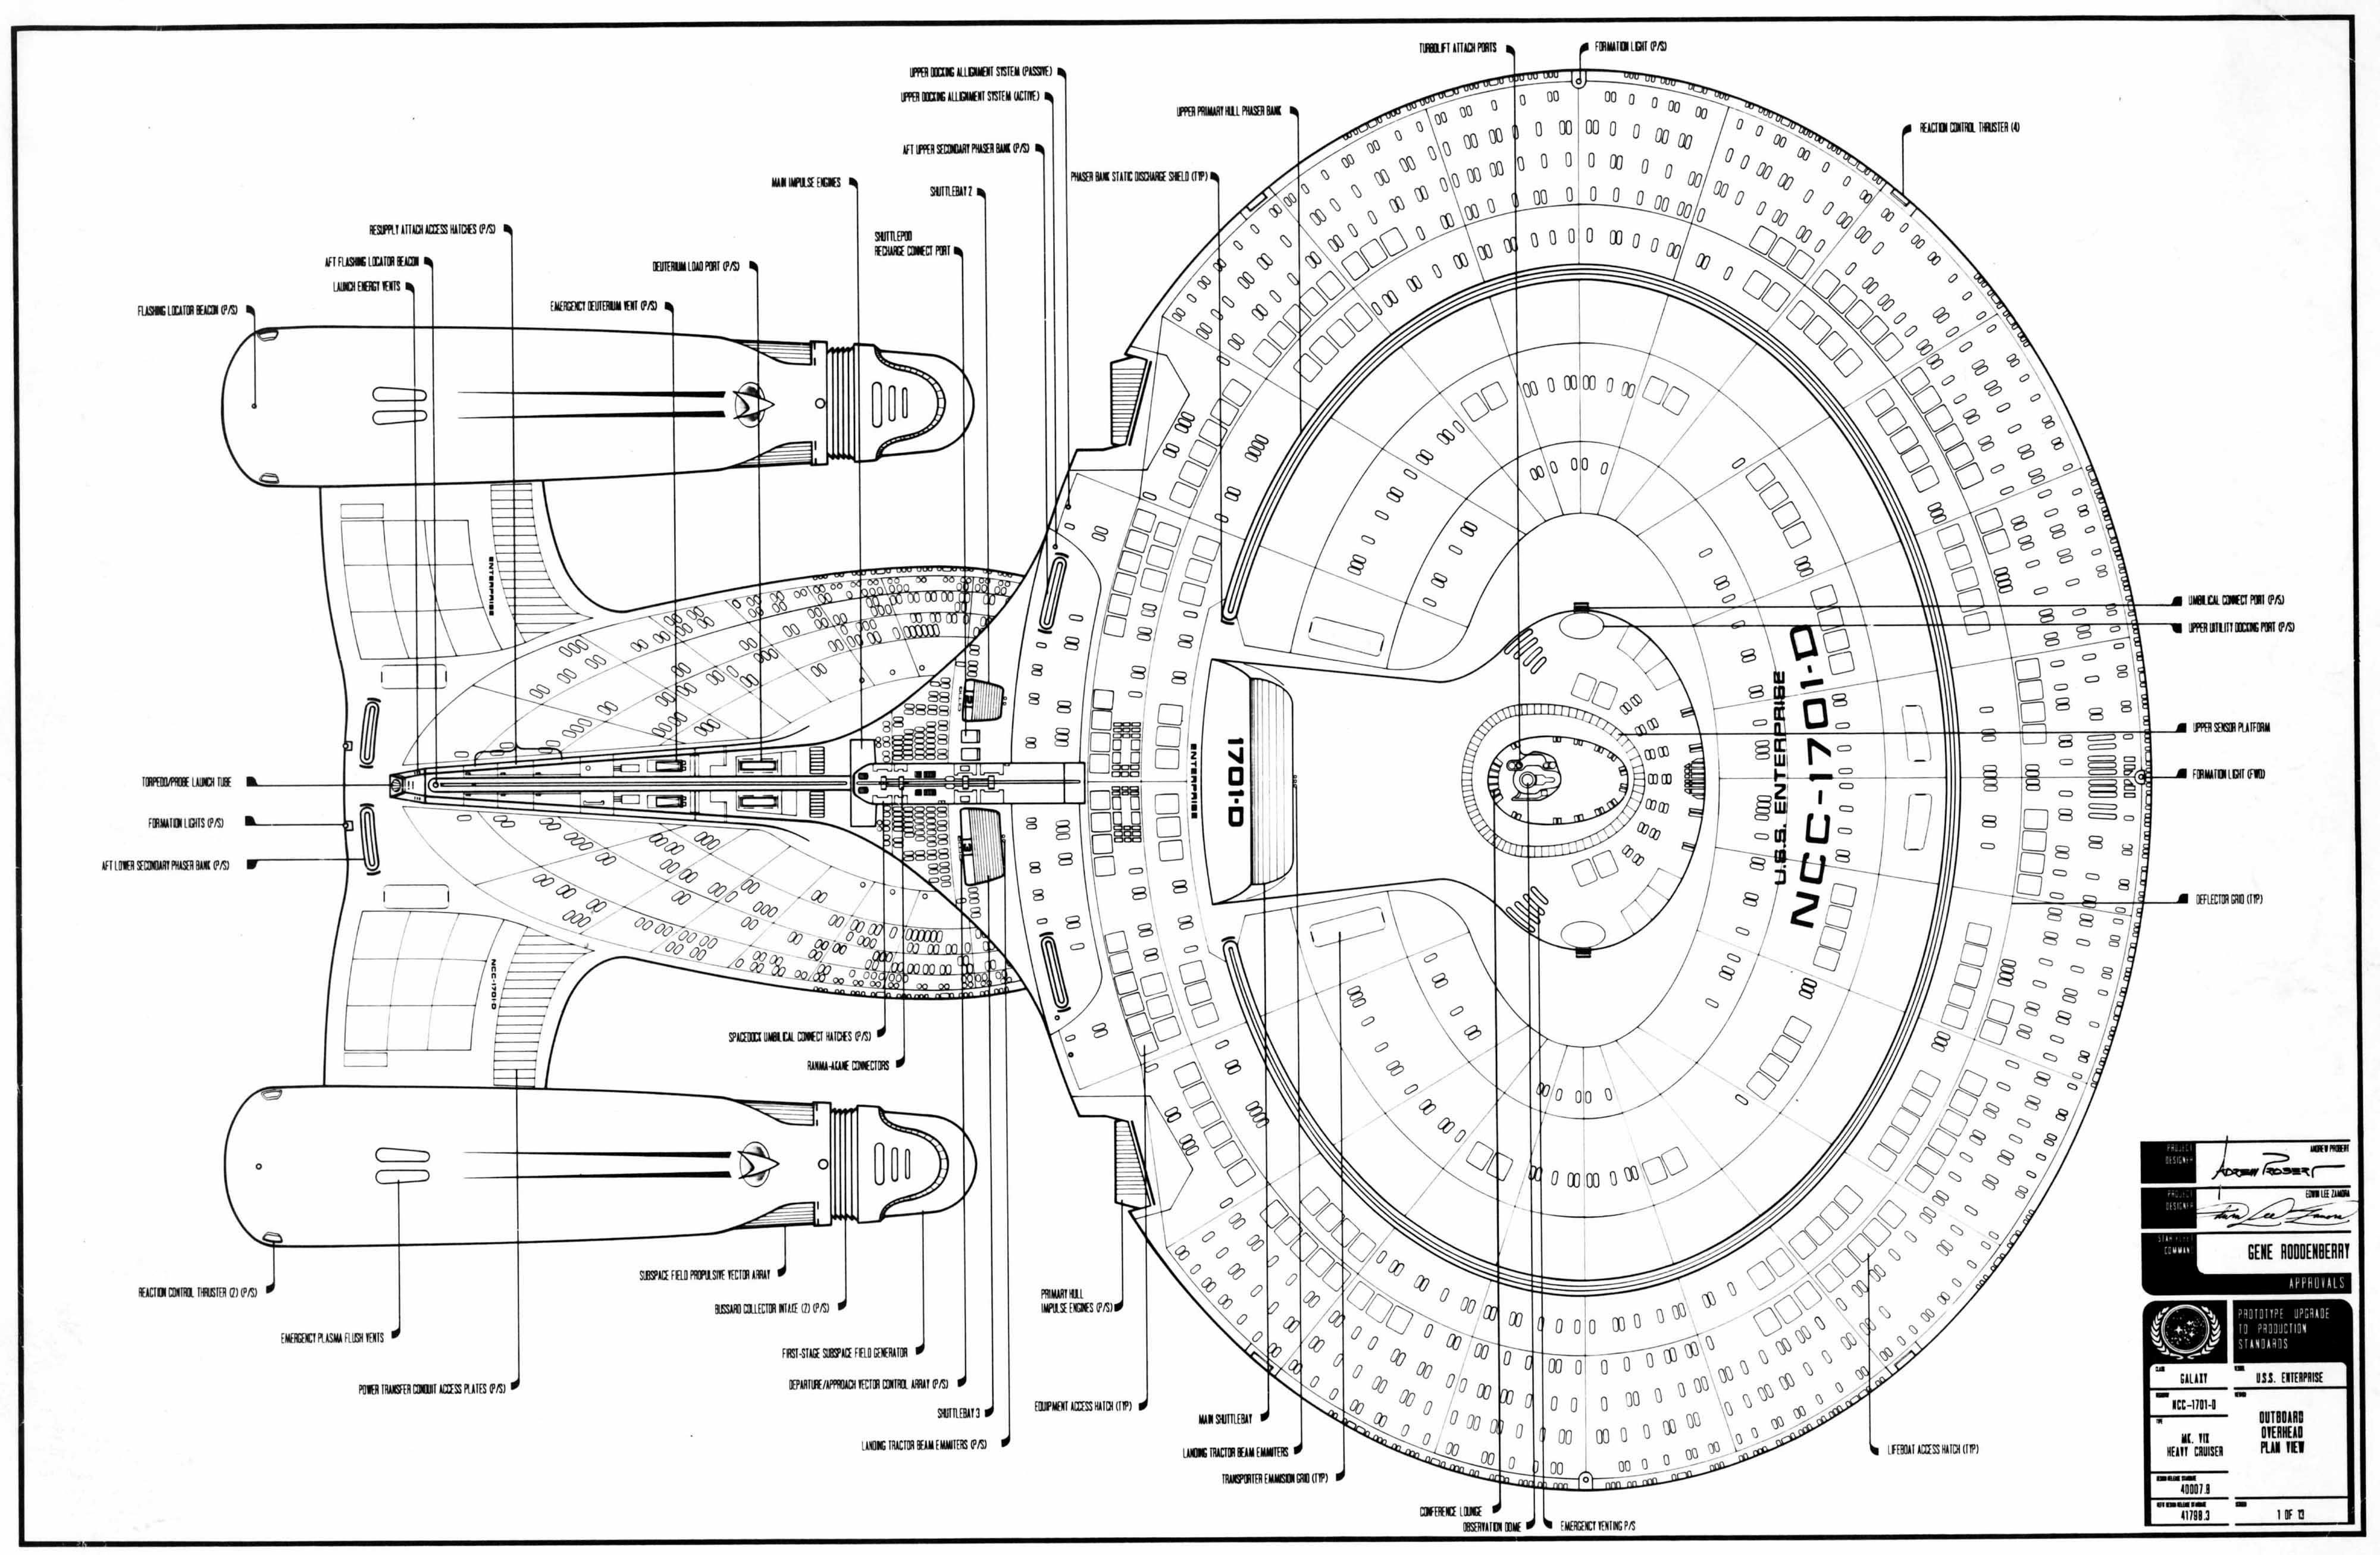 Schematic Dorsal View Of U S S Enterprise Ncc D